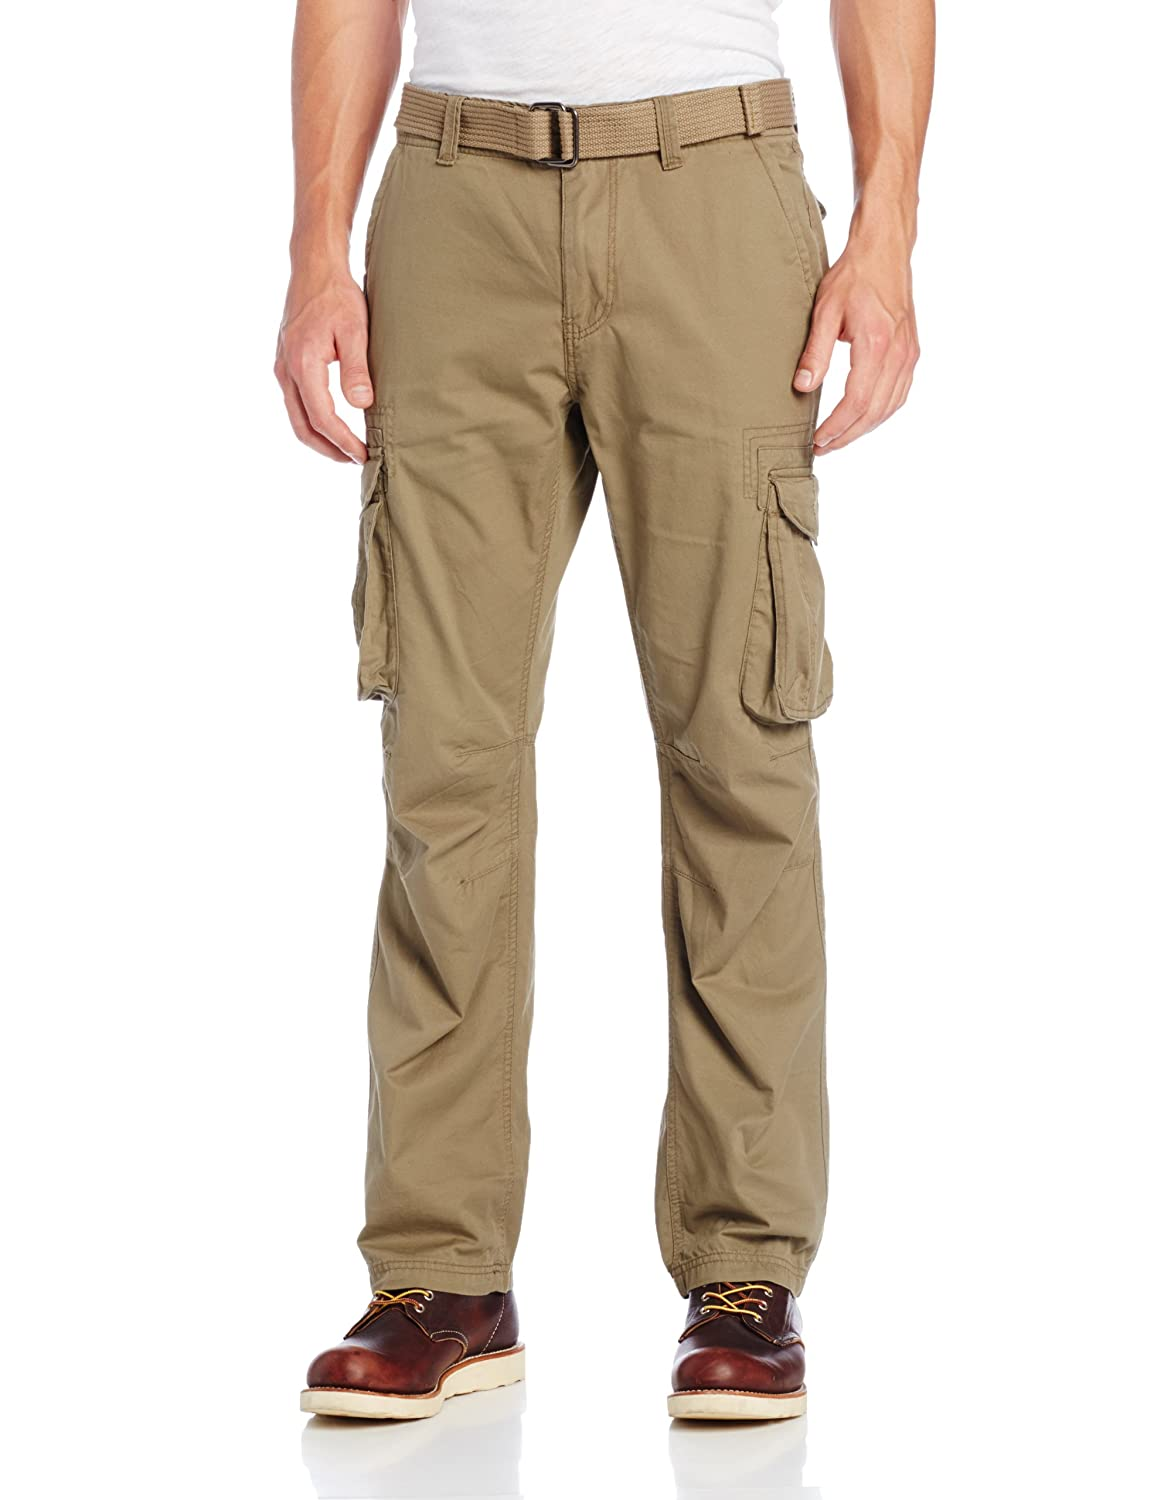 Company 81 Men's Twill Cargo Pant Company 81 Young Men's C33WB56